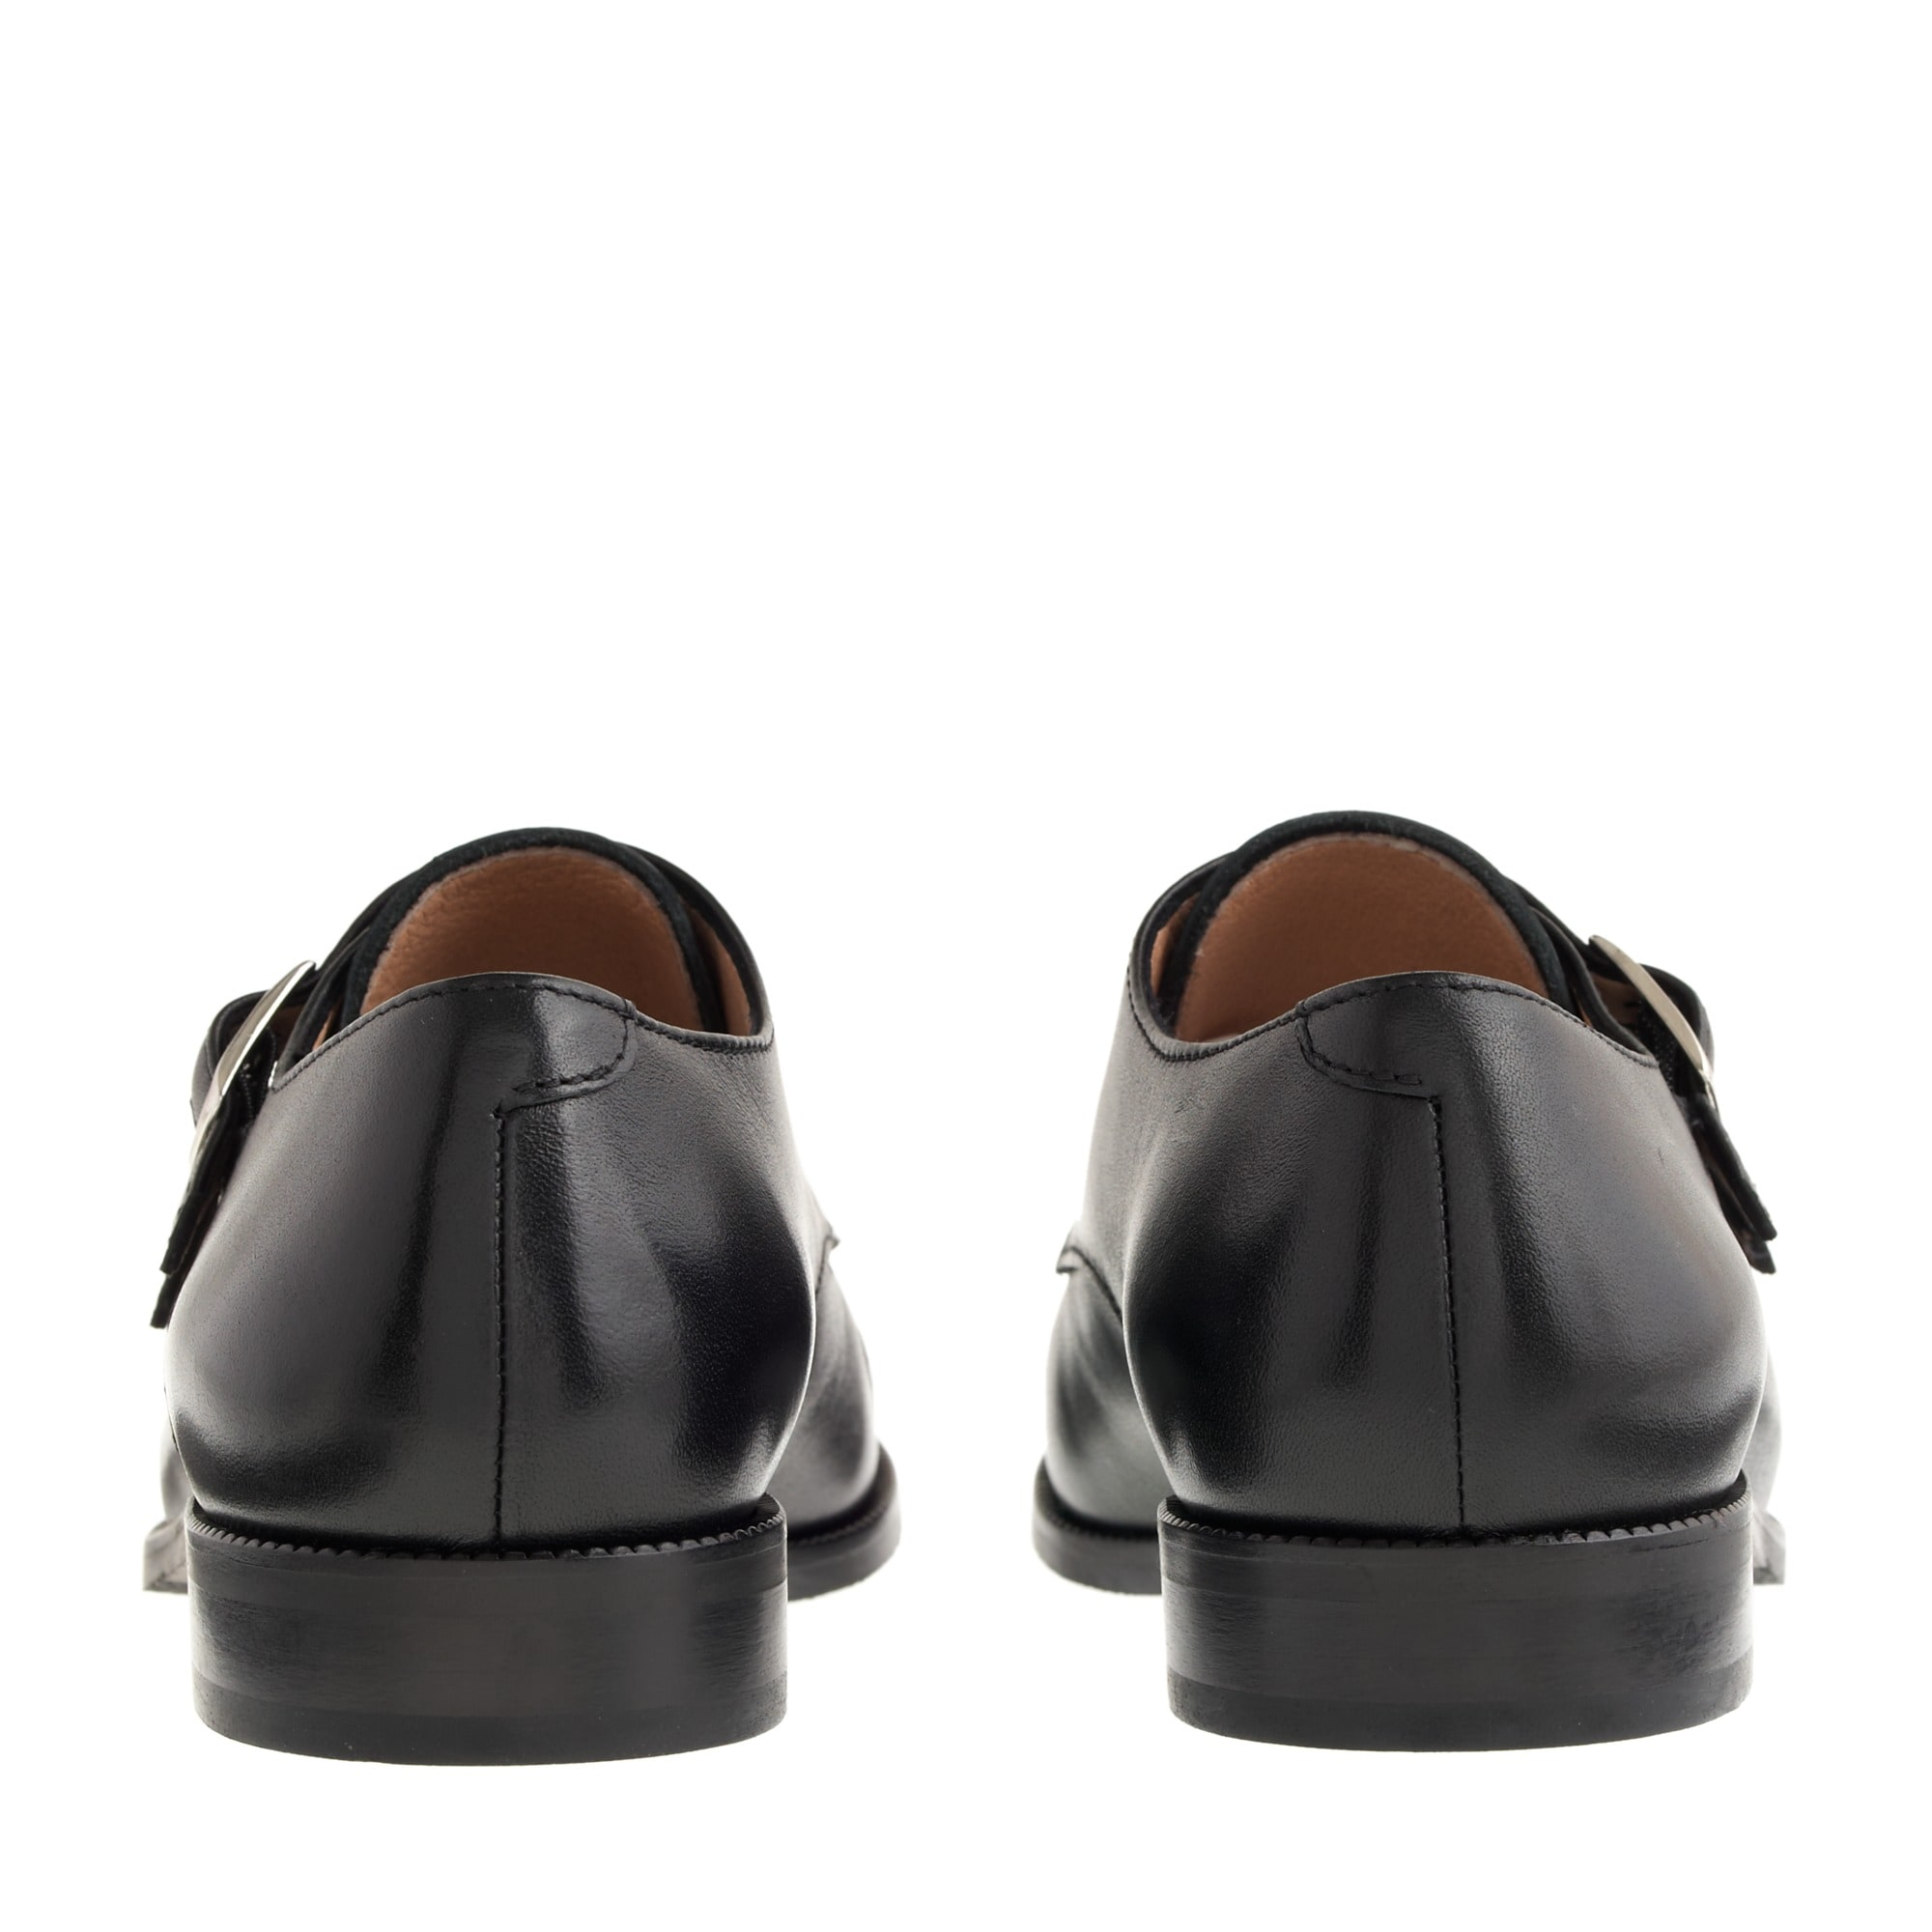 Kids' double monk strap shoes